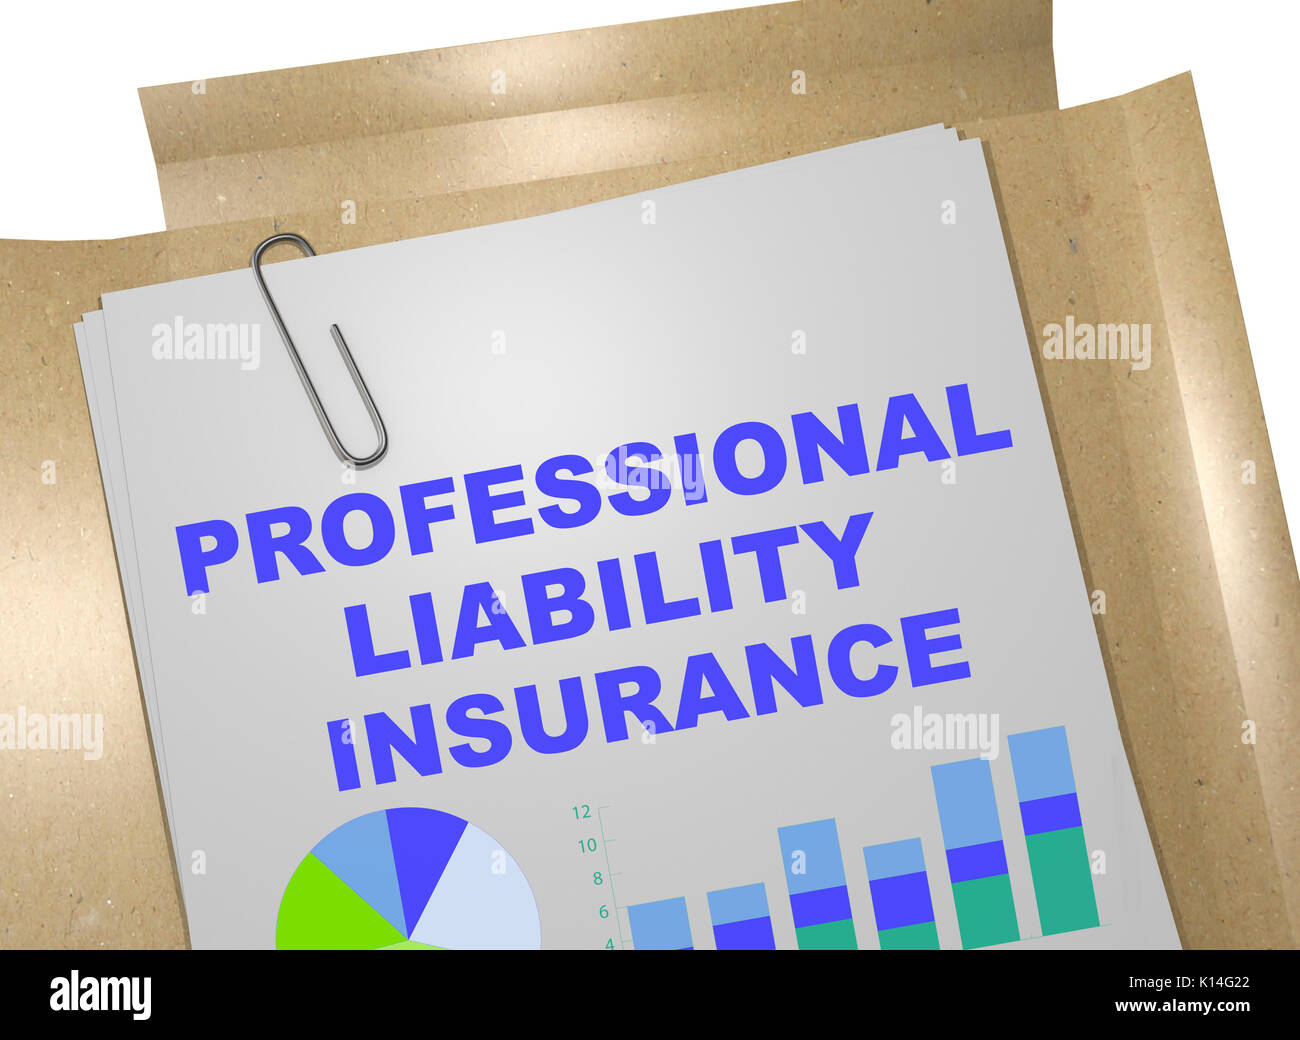 3D illustration of 'PROFESSIONAL LIABILITY INSURANCE' title on business document - Stock Image